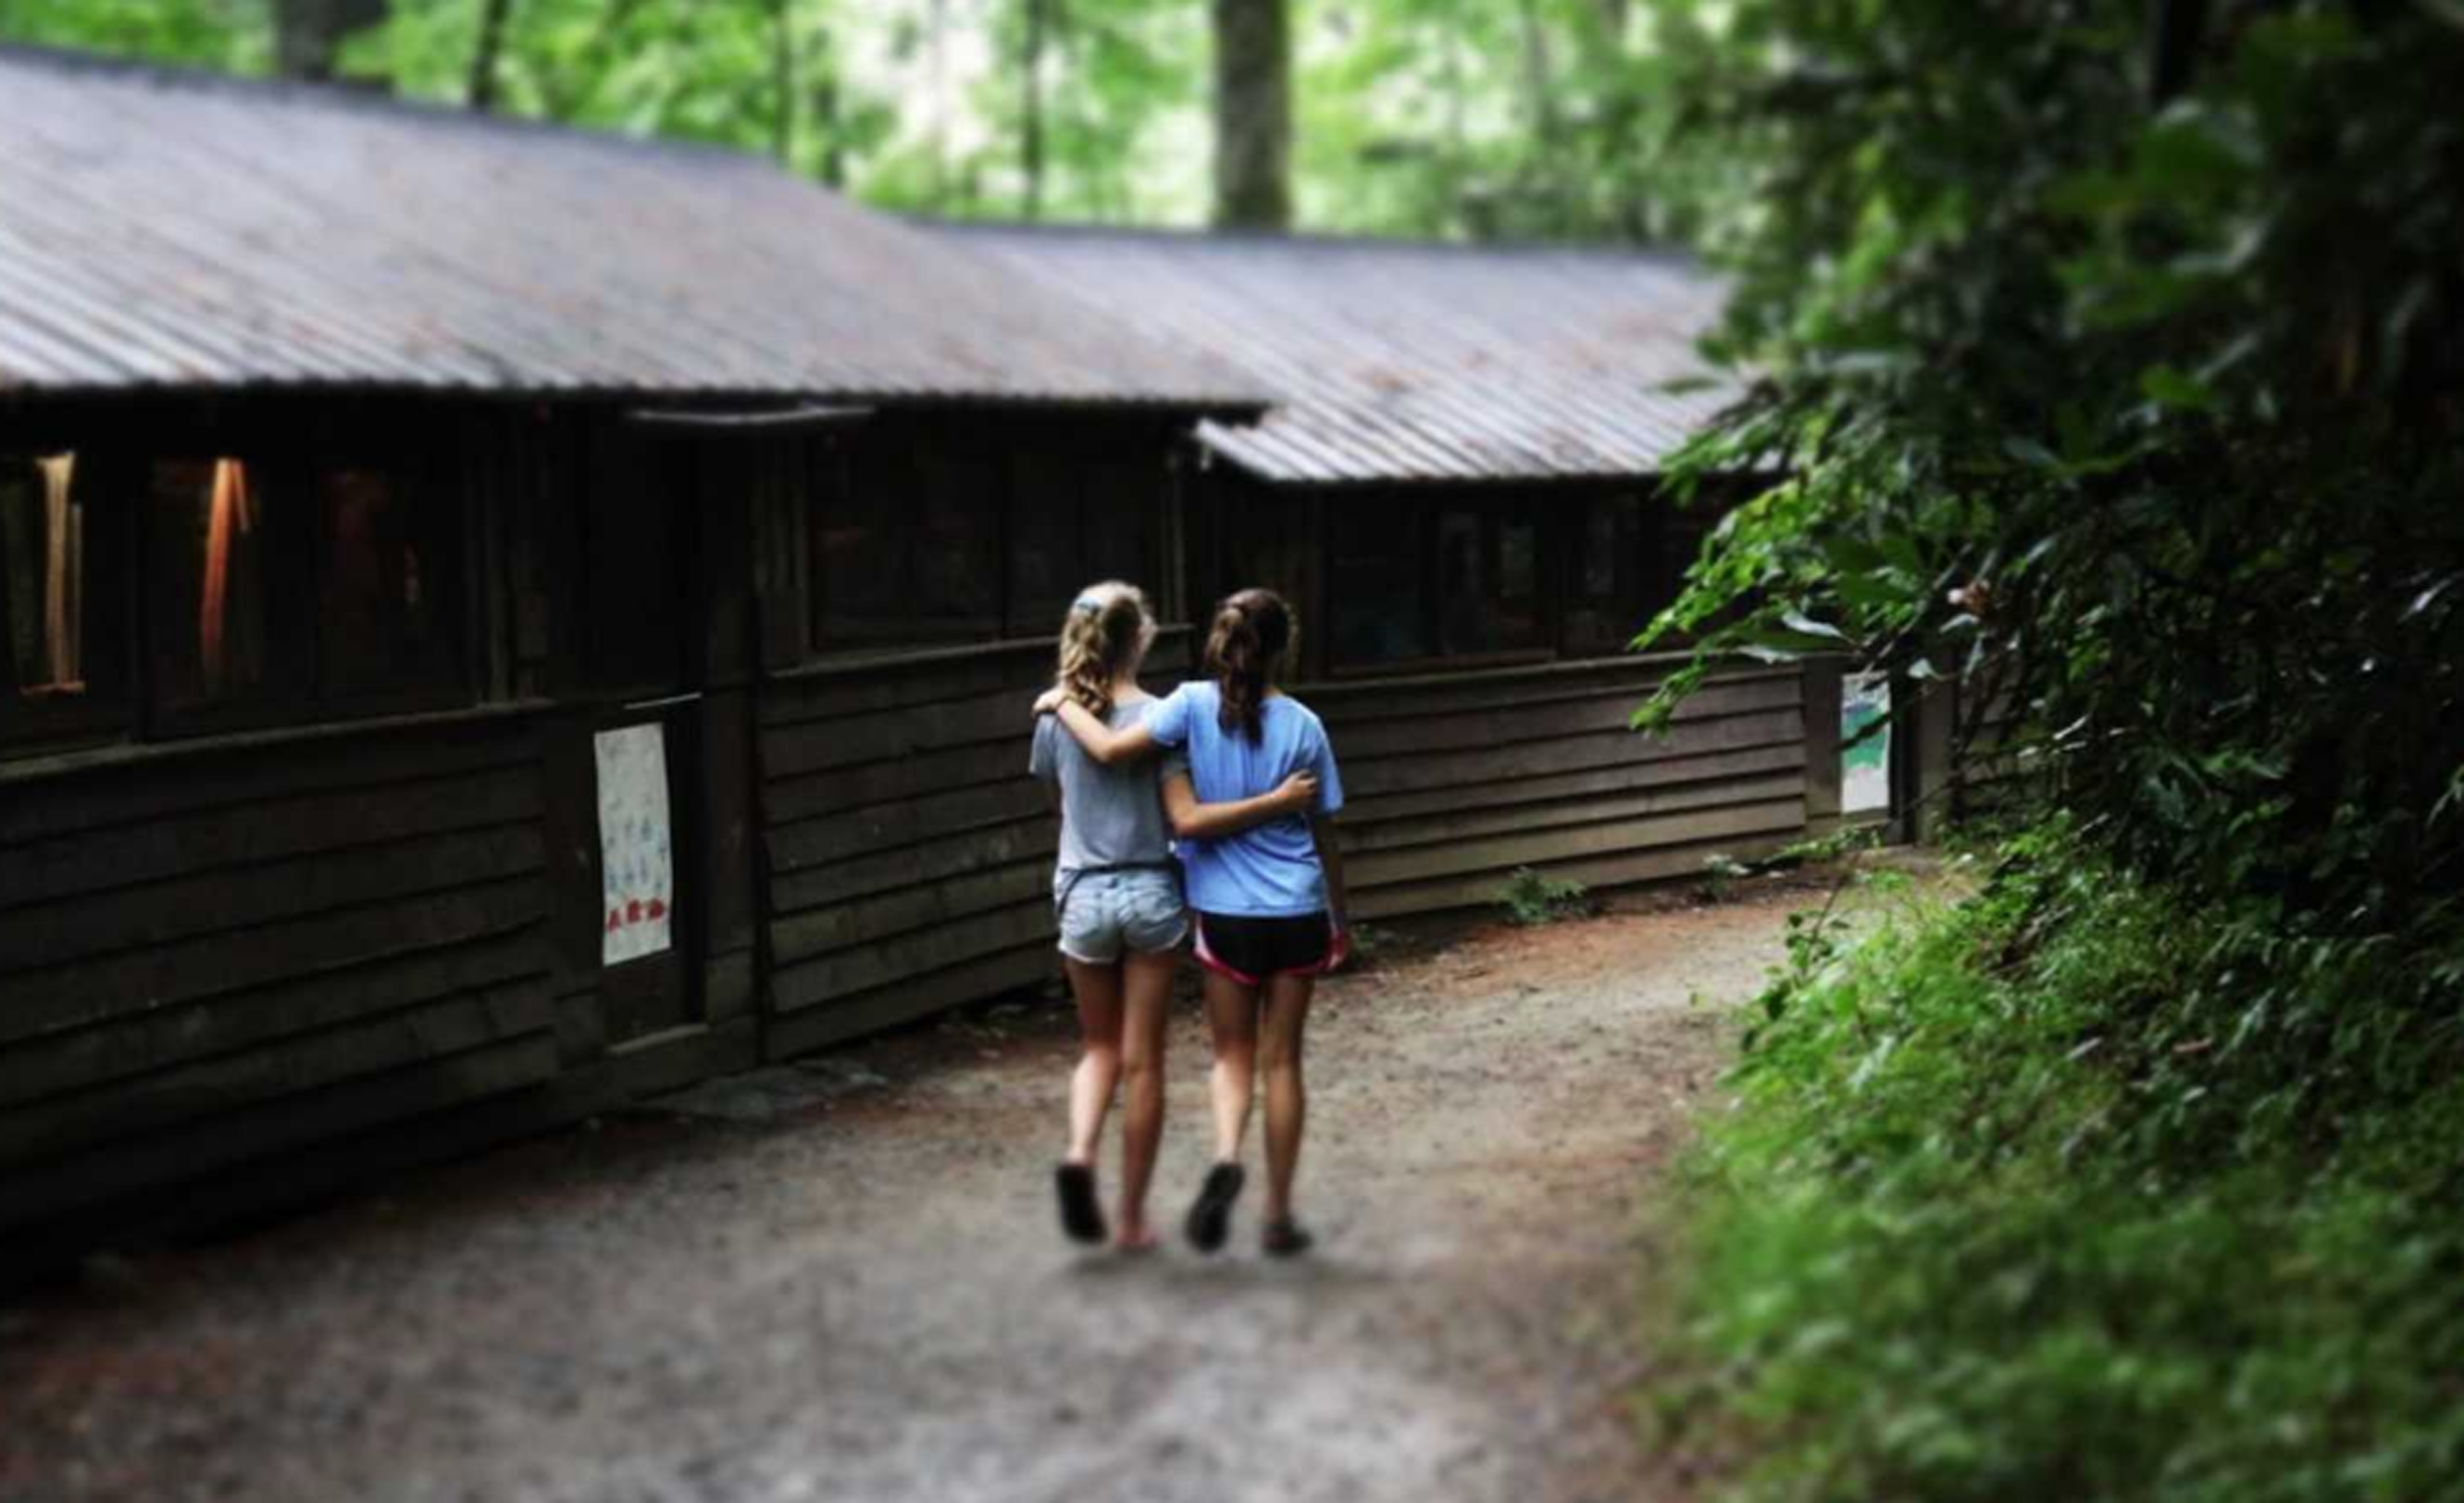 Girls arm in arm at summer camp